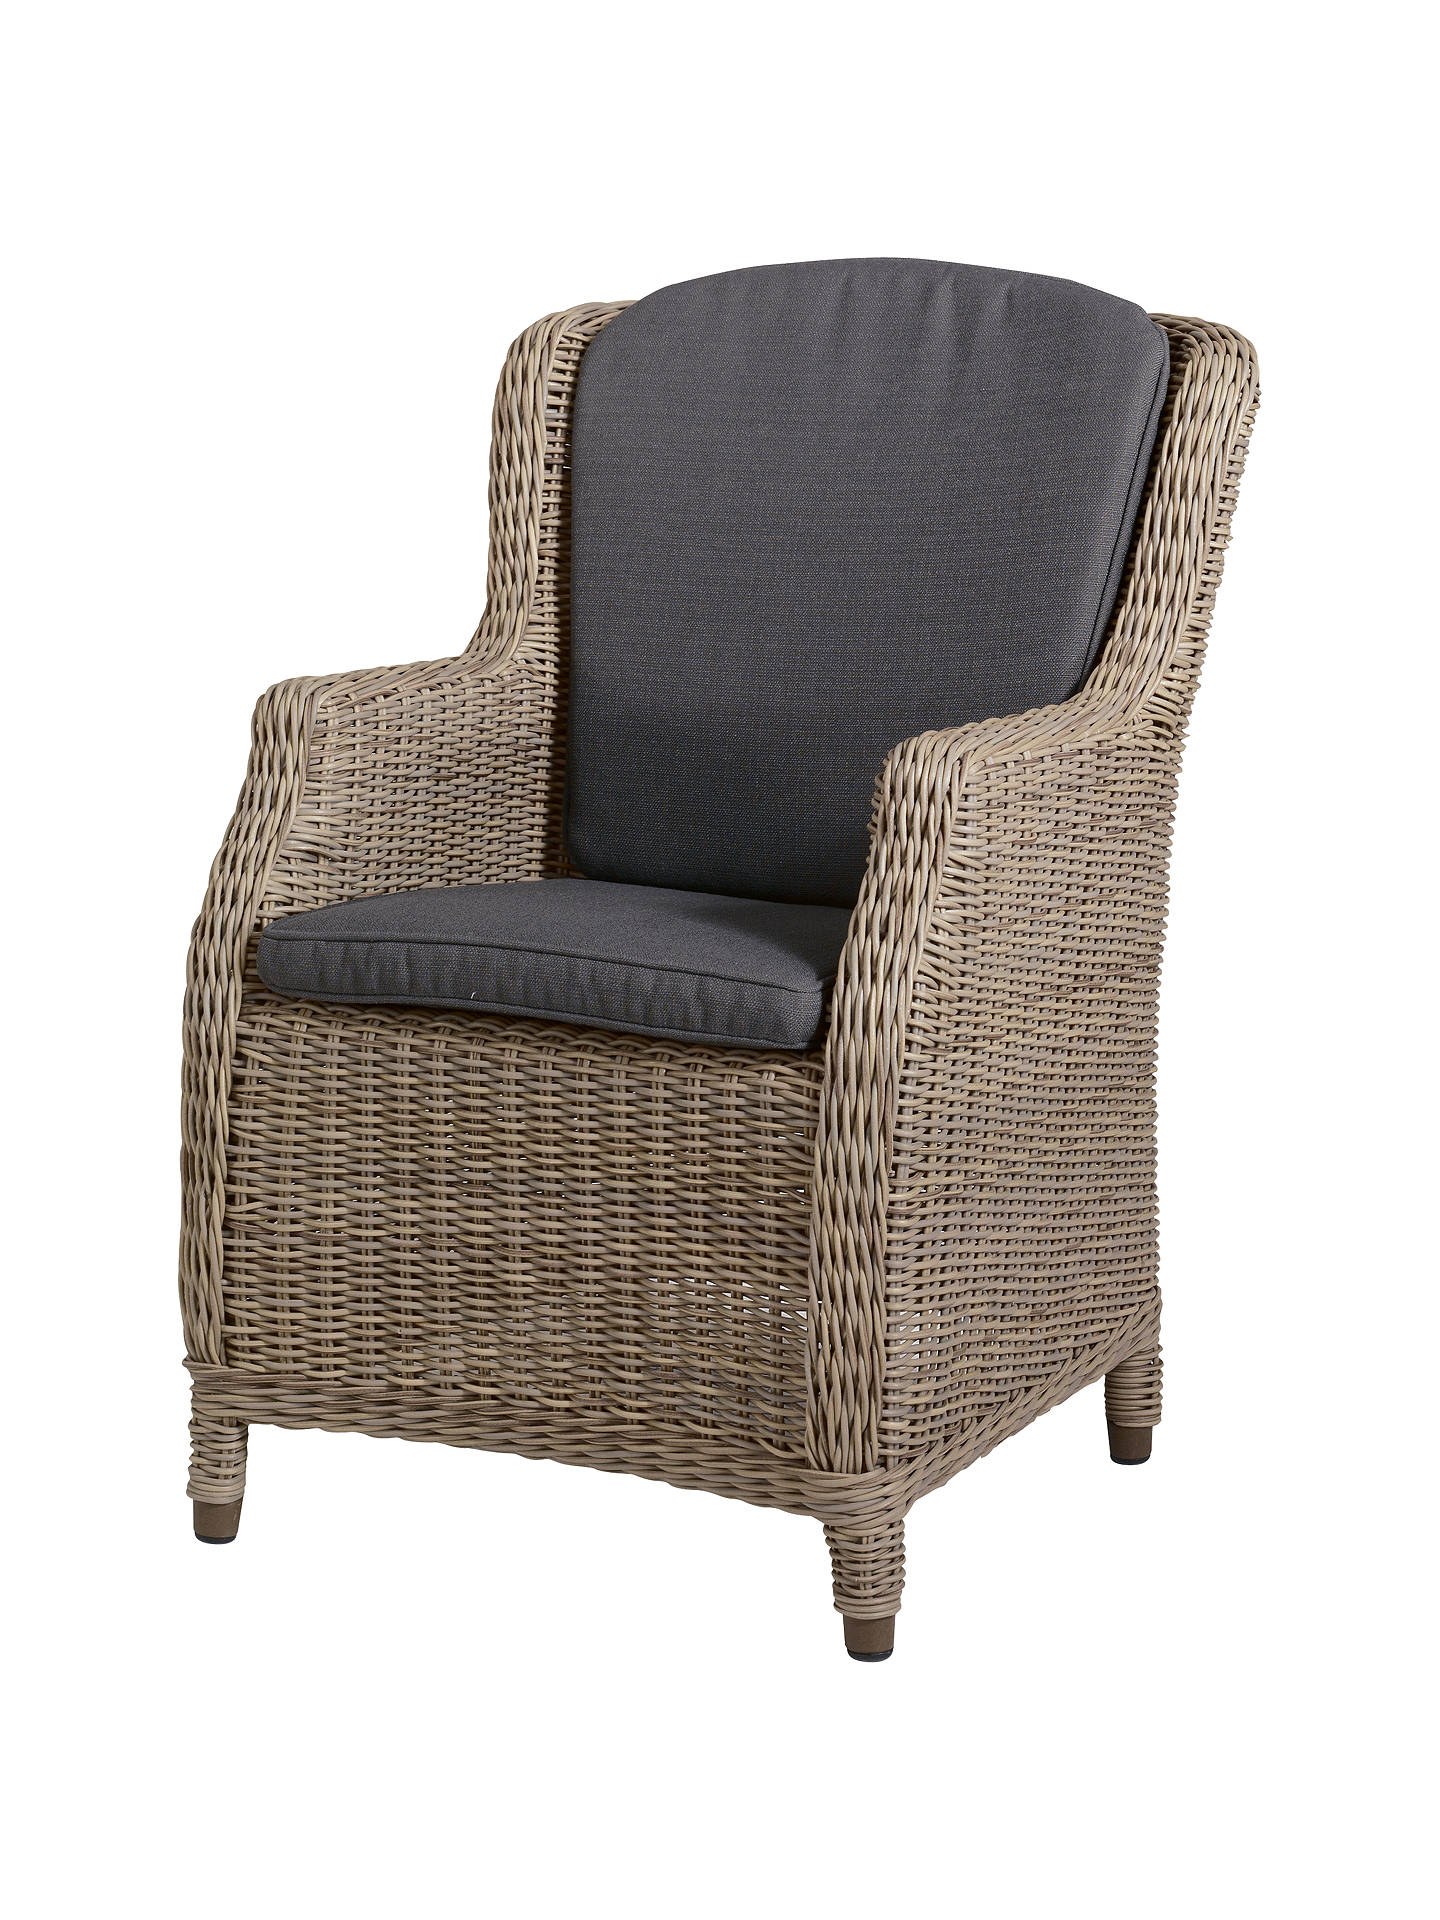 Buy4 Seasons Outdoor Valentine High Back Garden Chair, Pure Online at johnlewis.com